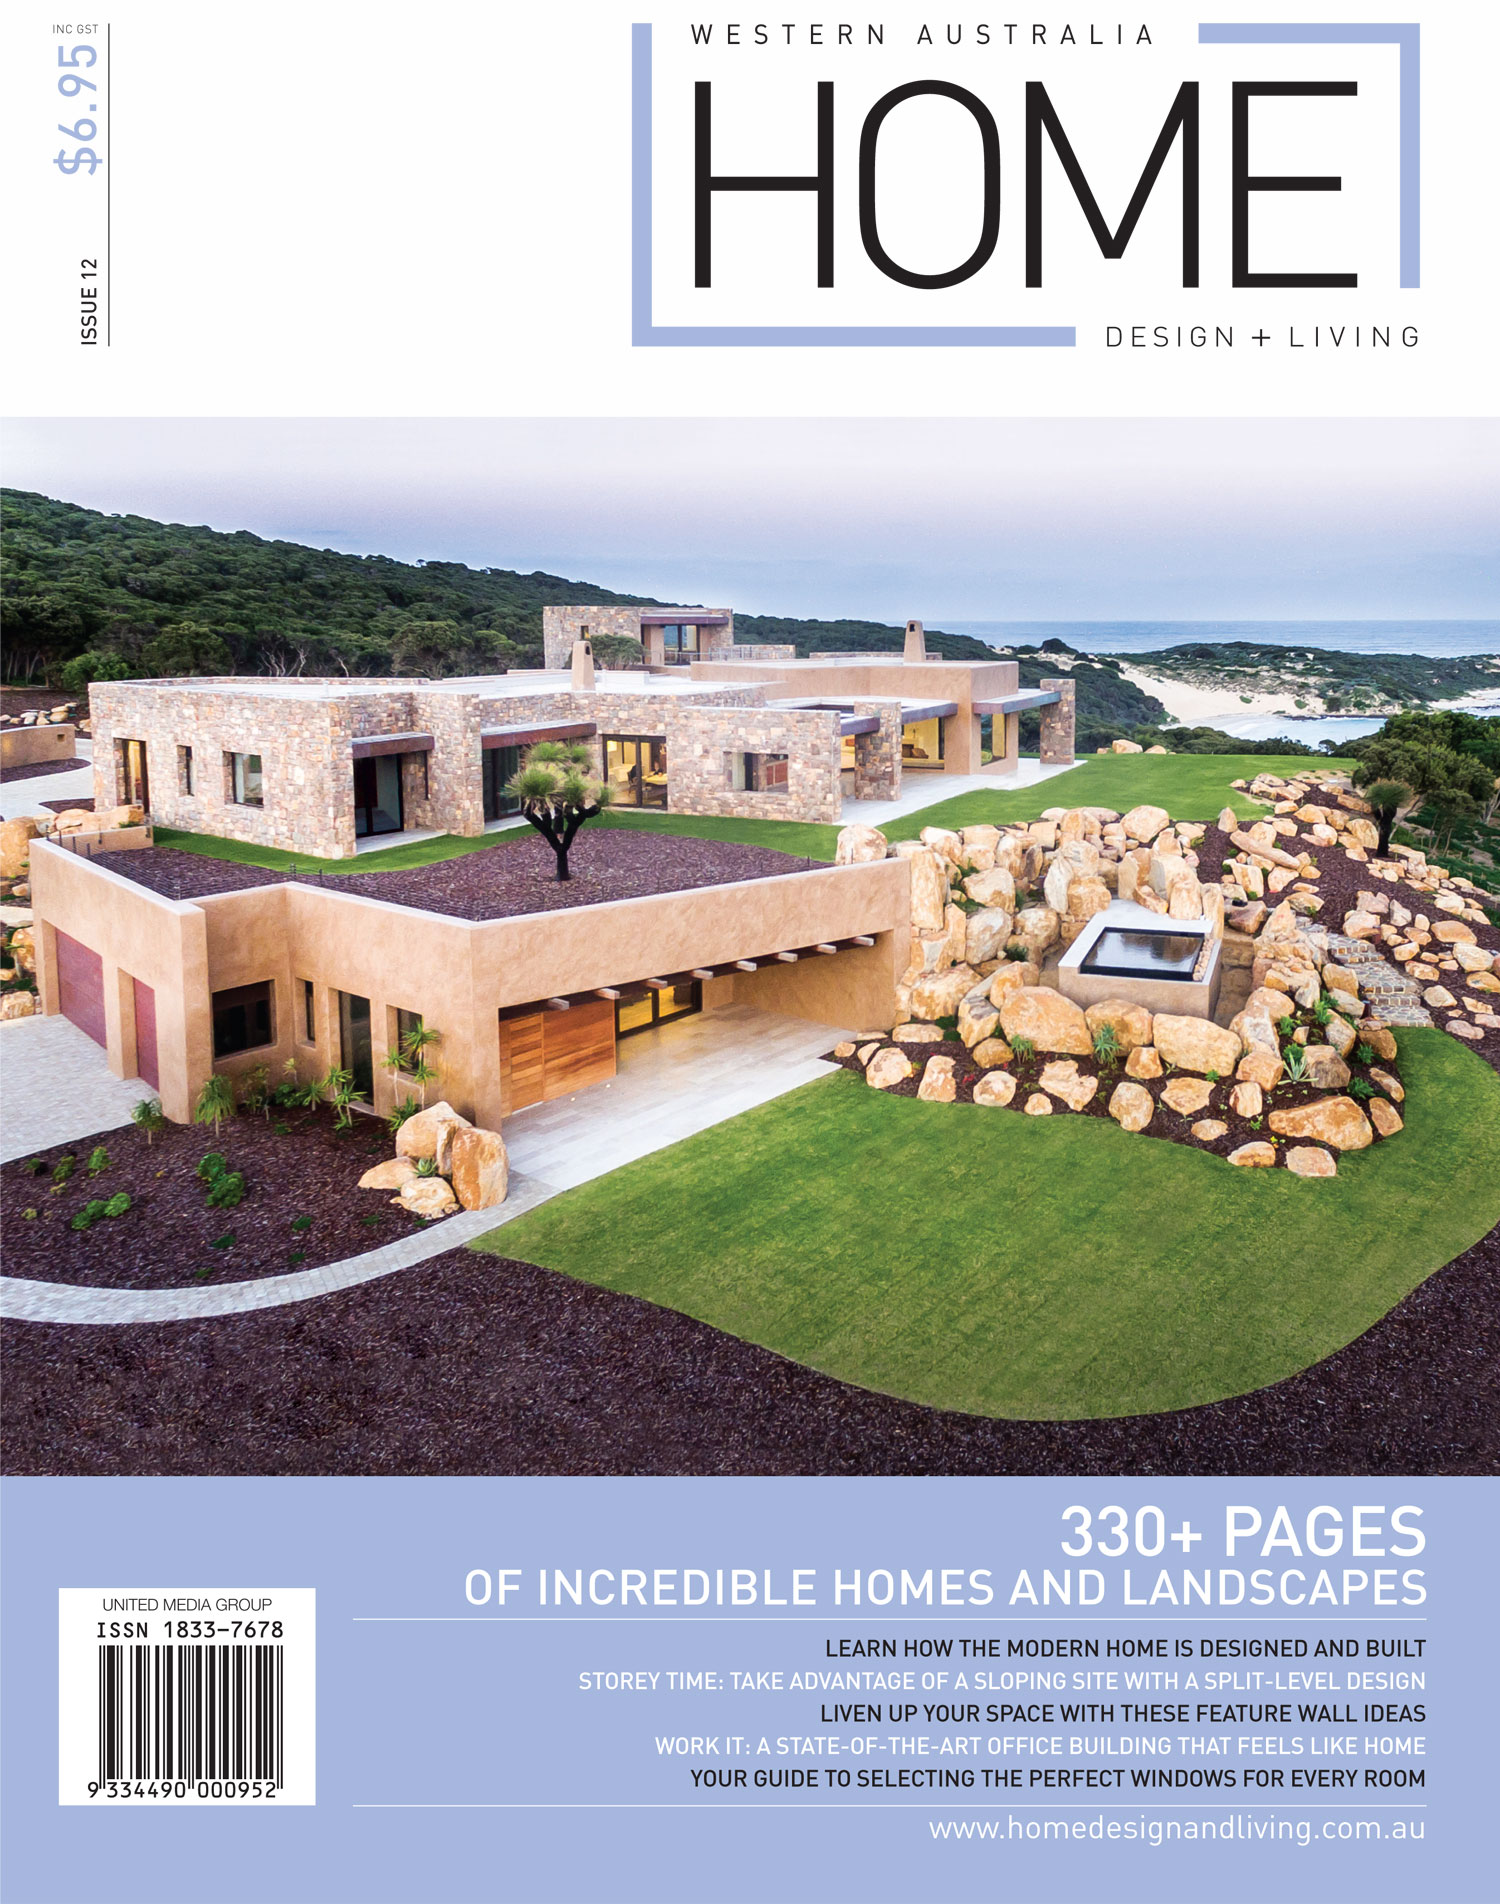 Home Design Living The Very Latest Home Design And Lifestyle Trends